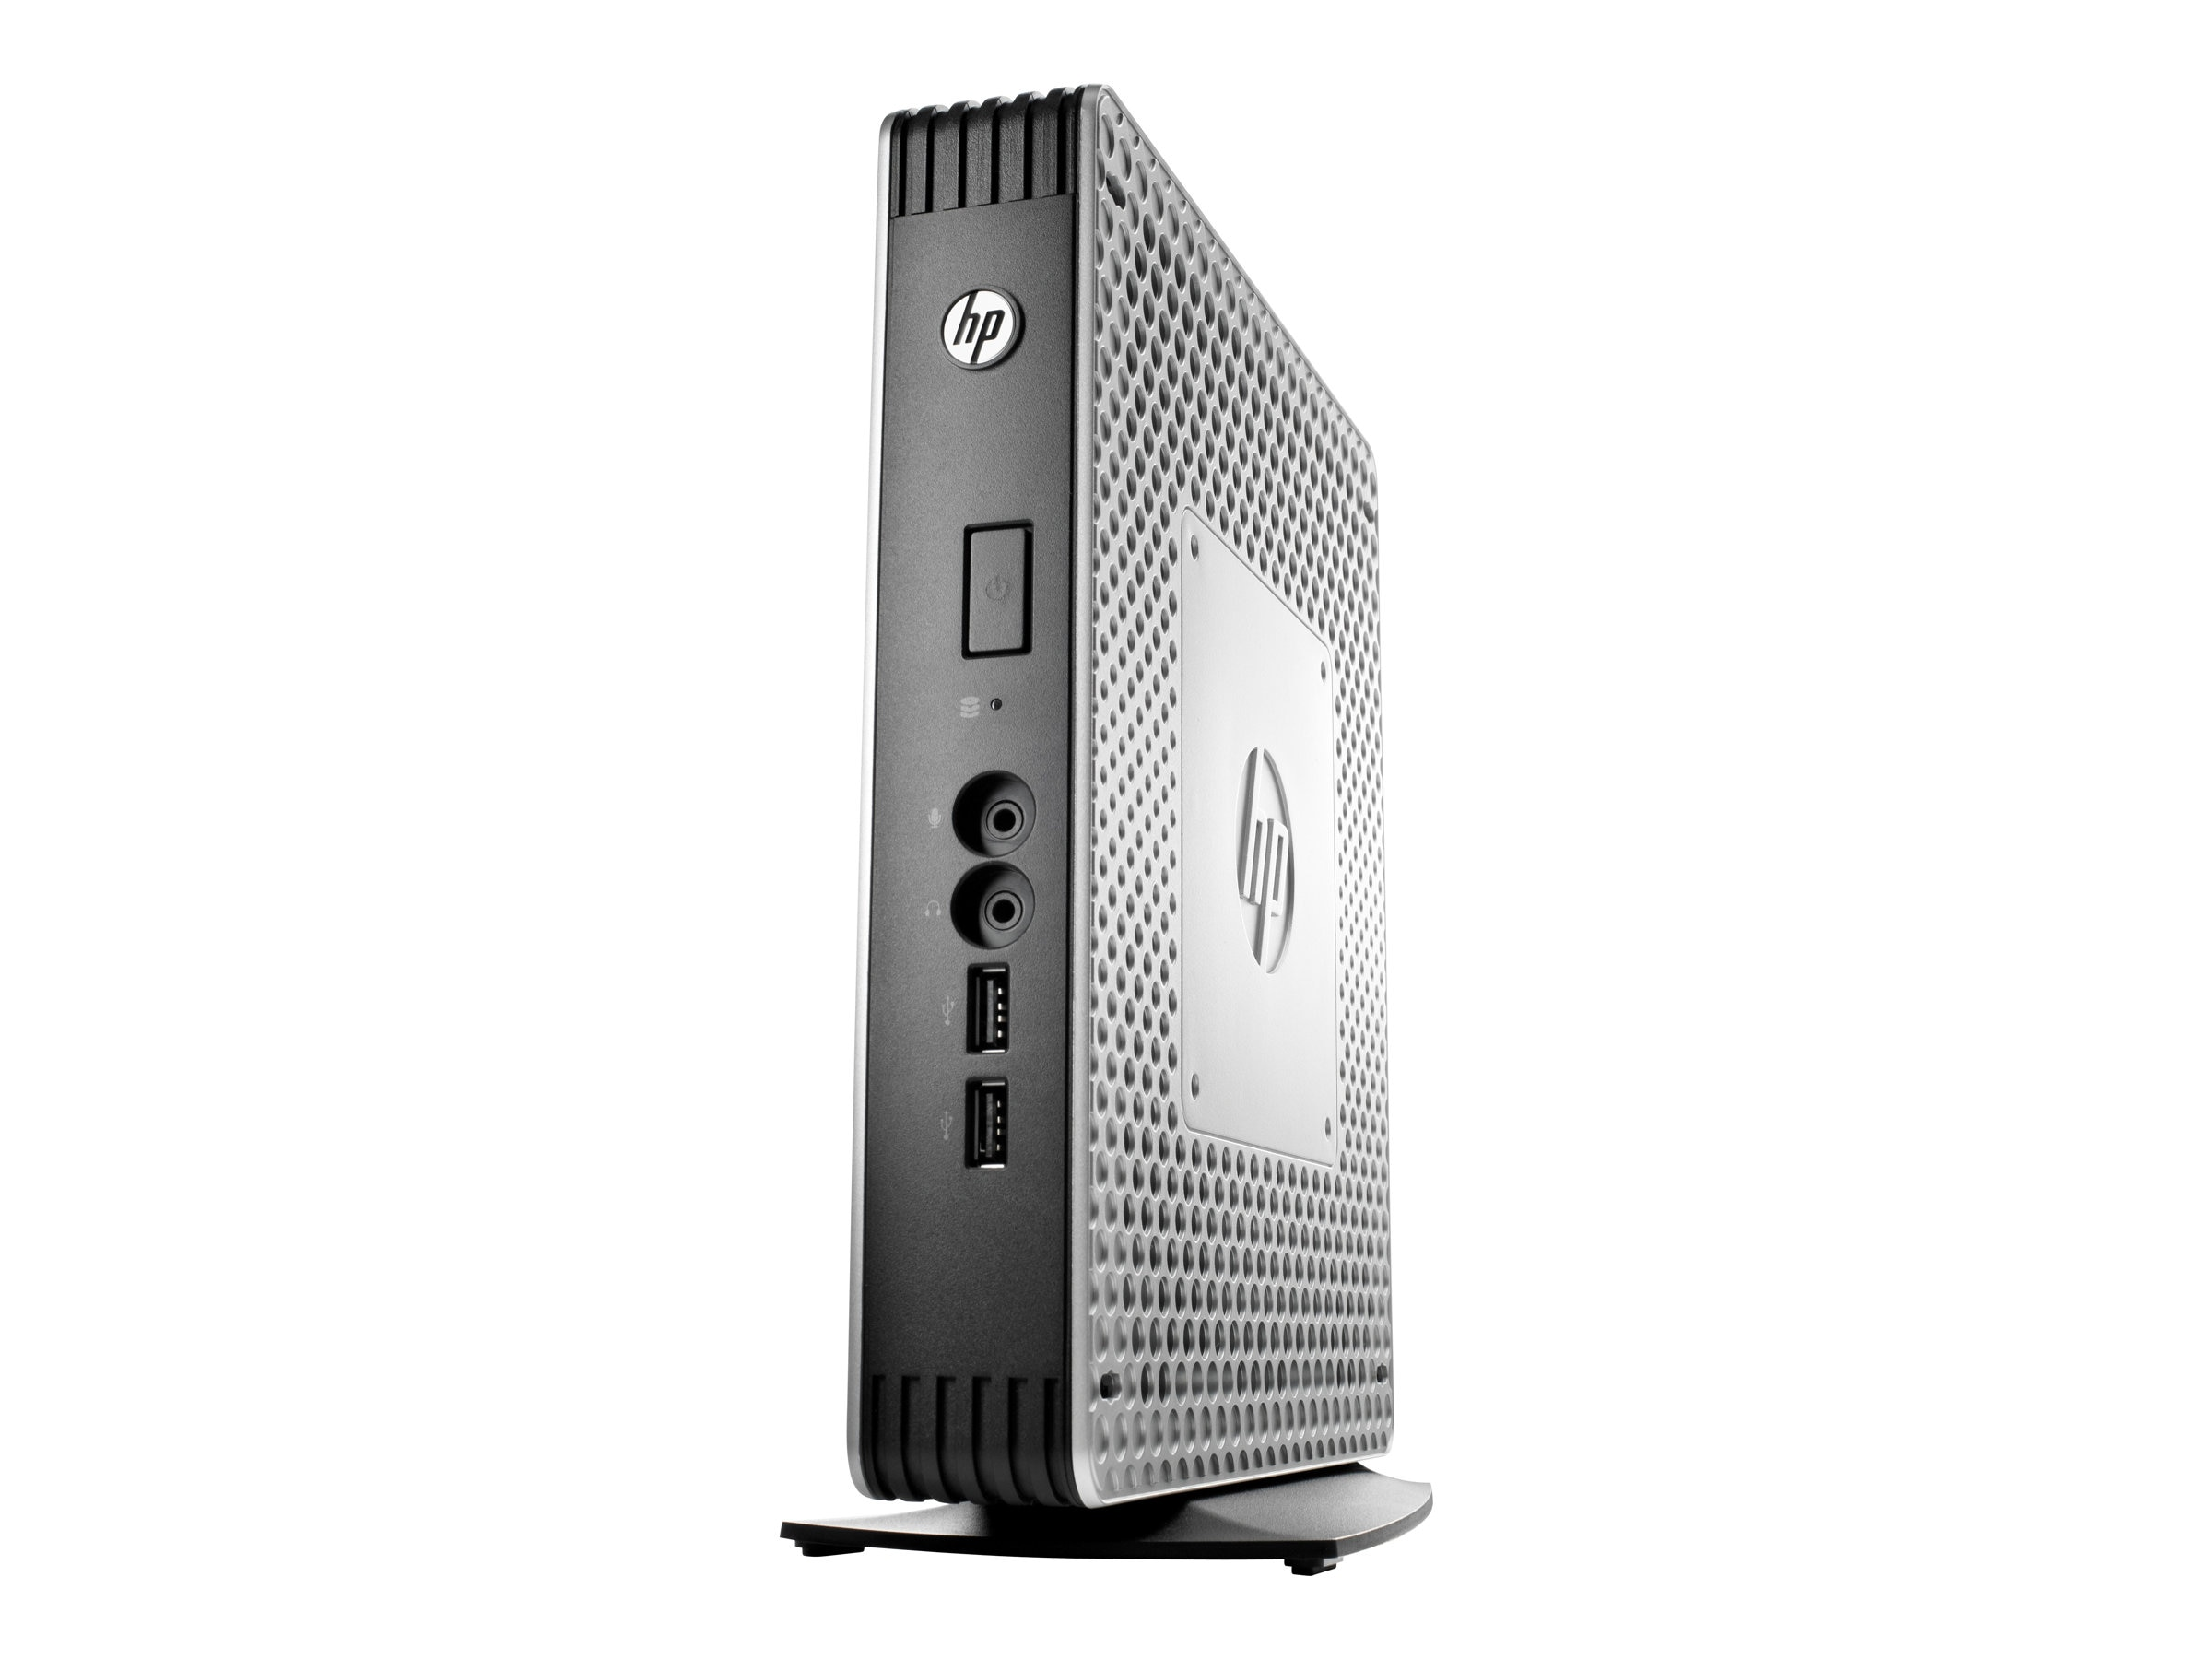 Open Box HP t610 Flexible Thin Client AMD 1.65GHz 4GB 16GB GNIC WES7, B8D11AA#ABA, 30939975, Thin Client Hardware